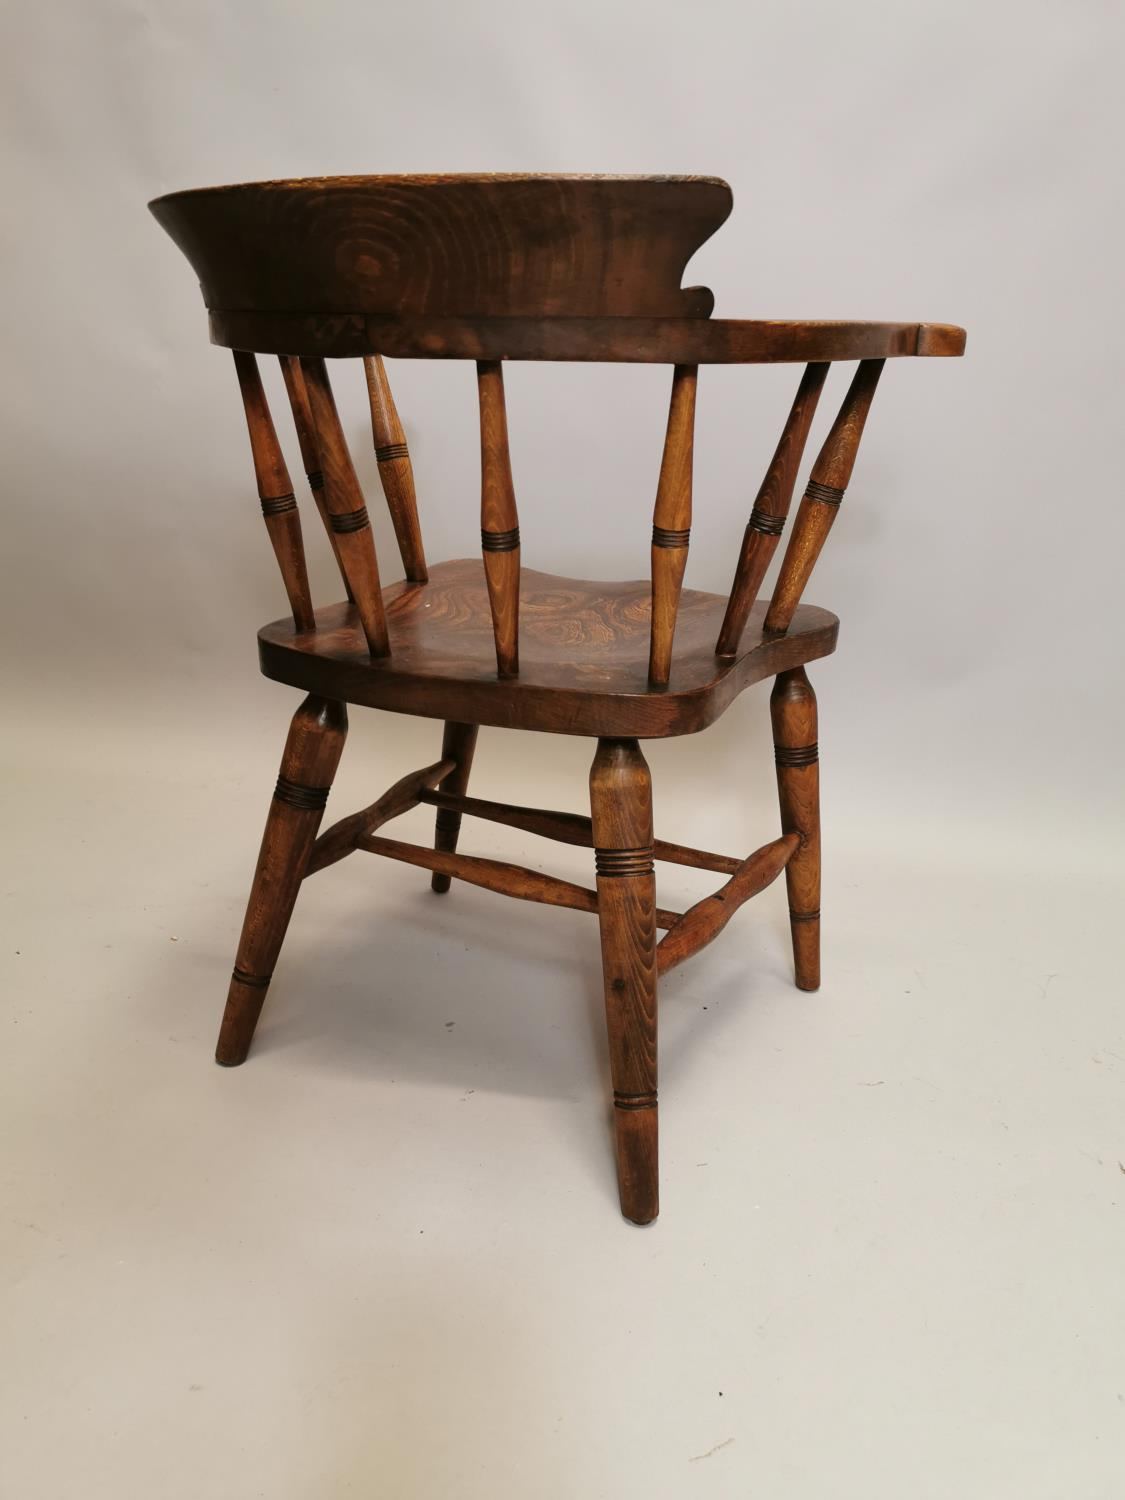 Early 20th C. Ash and elm smoker's bow - Image 6 of 7